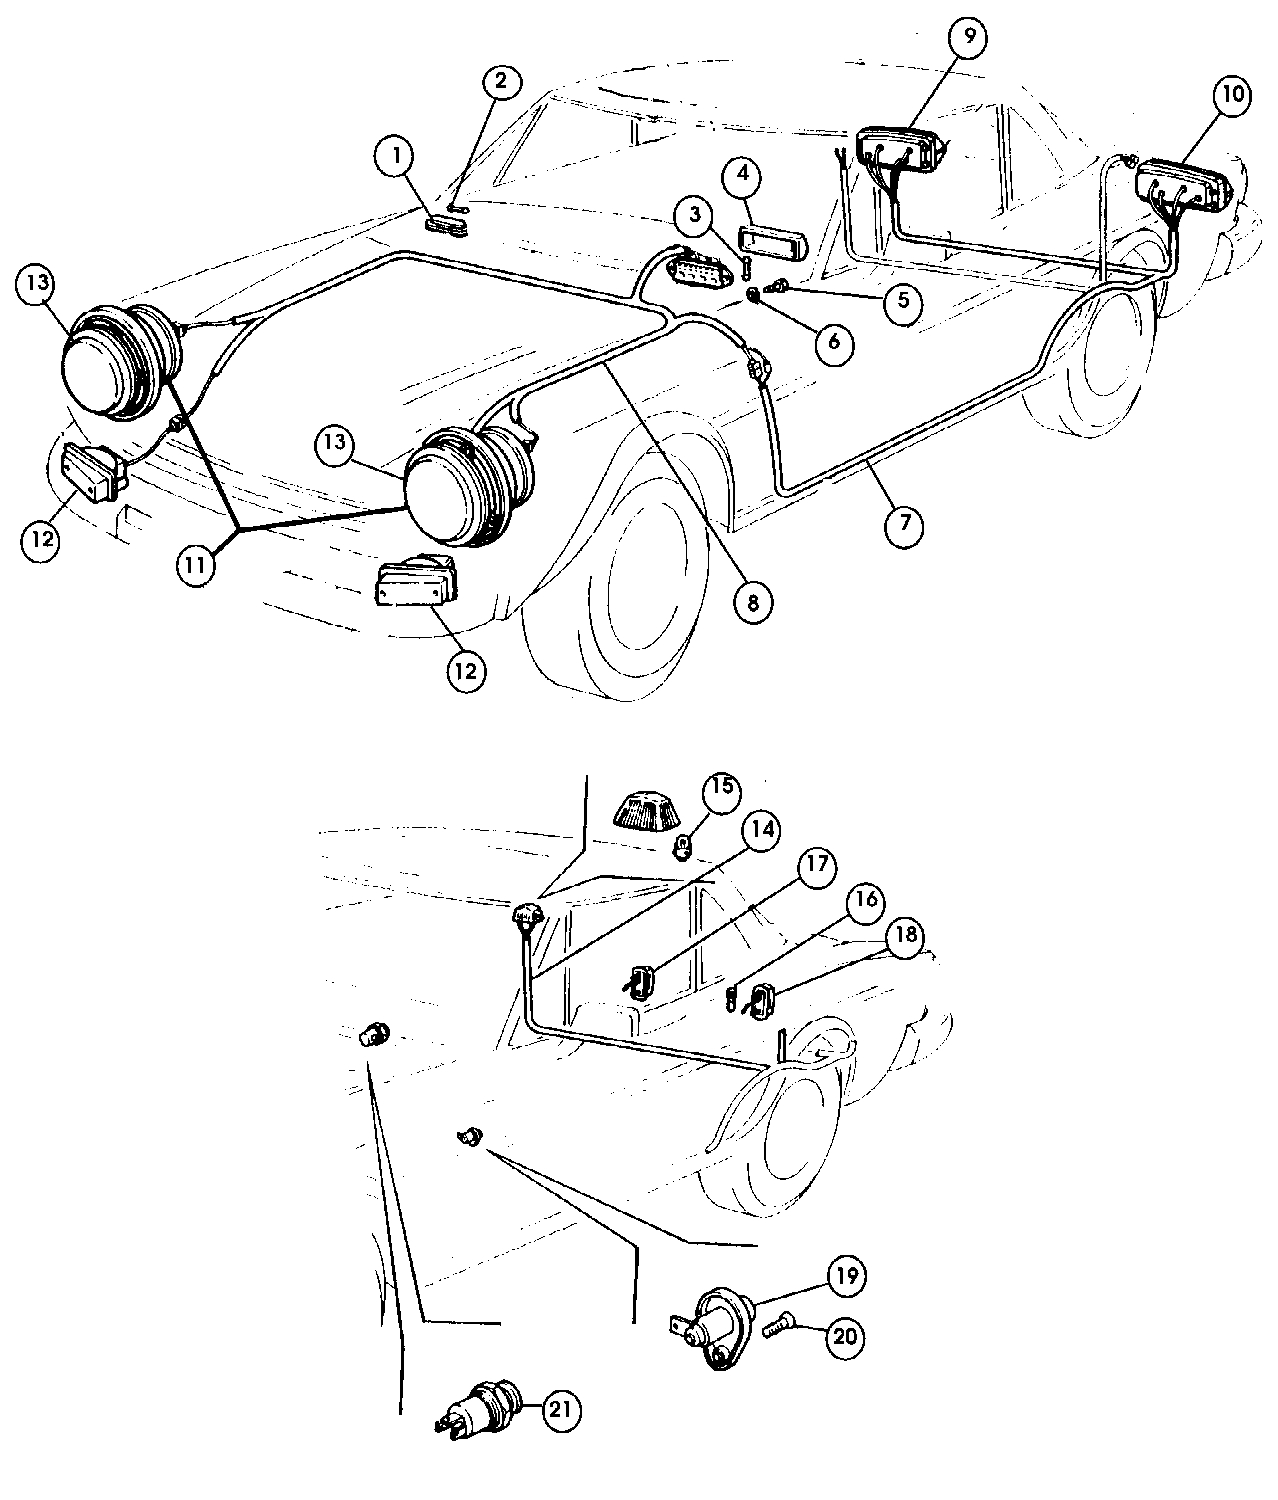 1979 fiat spider ignition wiring diagrams  fiat  wiring diagram images